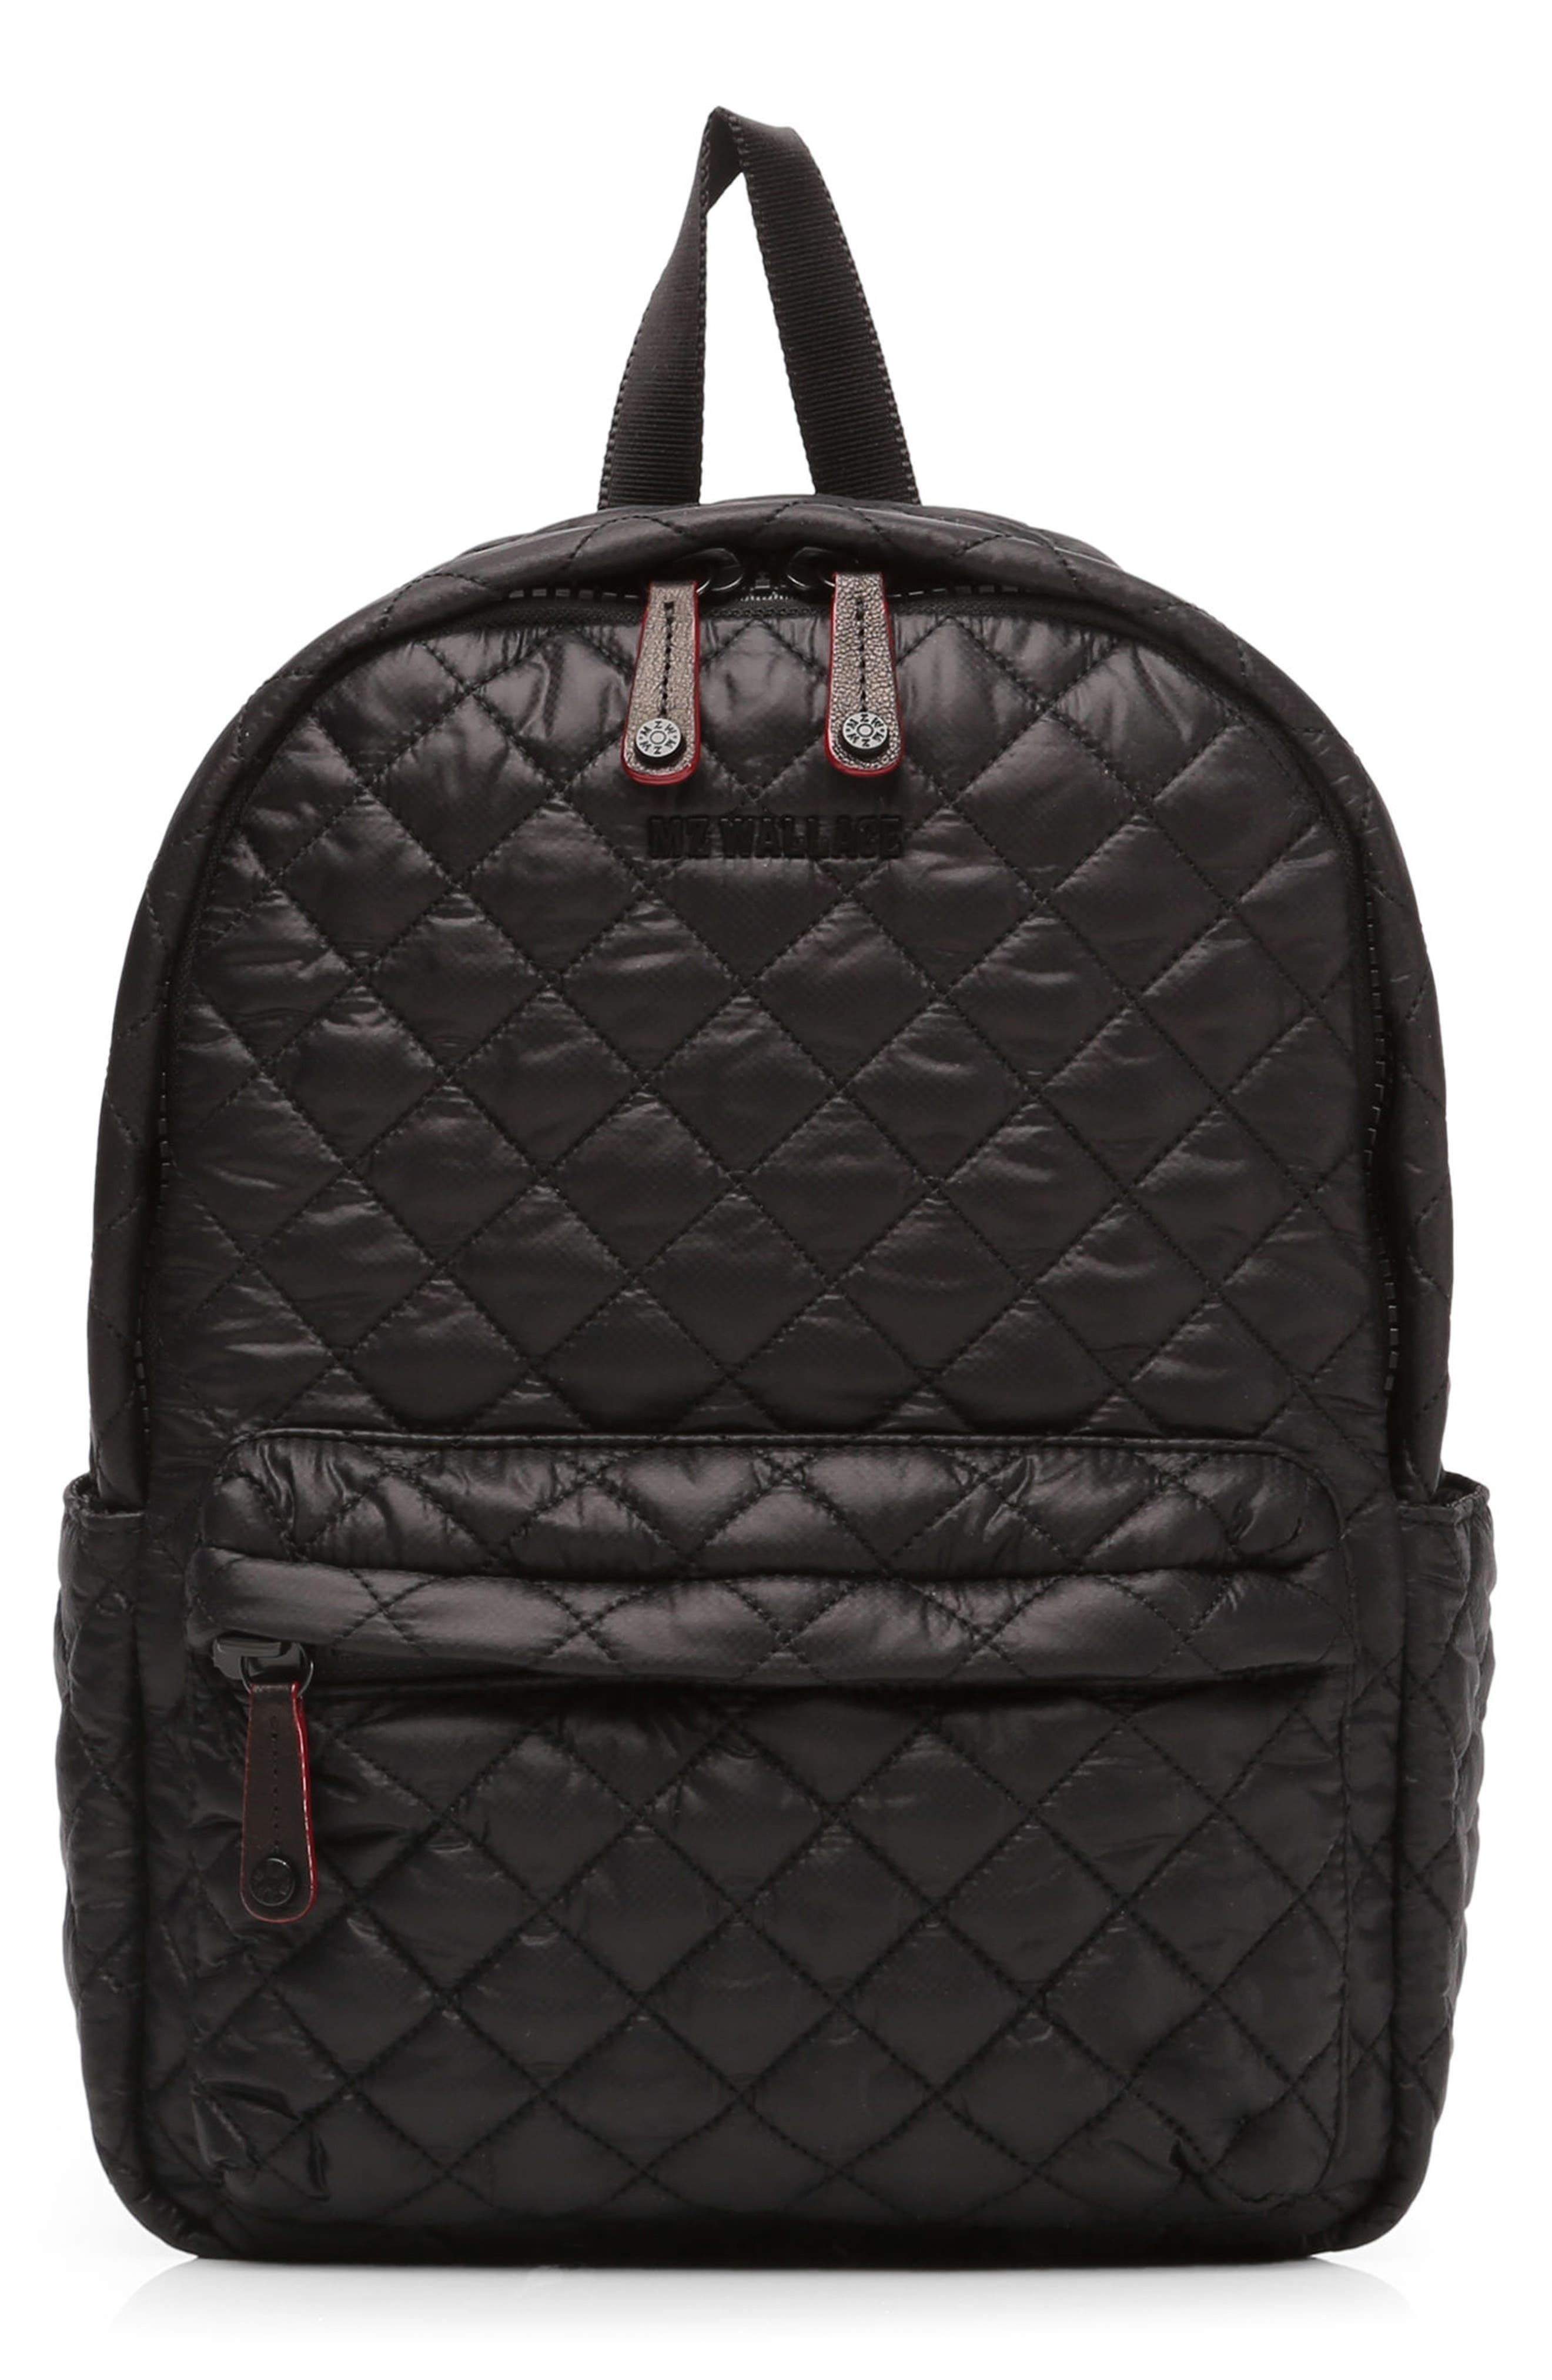 Alternate Image 1 Selected - MZ Wallace 'Small Metro' Quilted Oxford Nylon Backpack